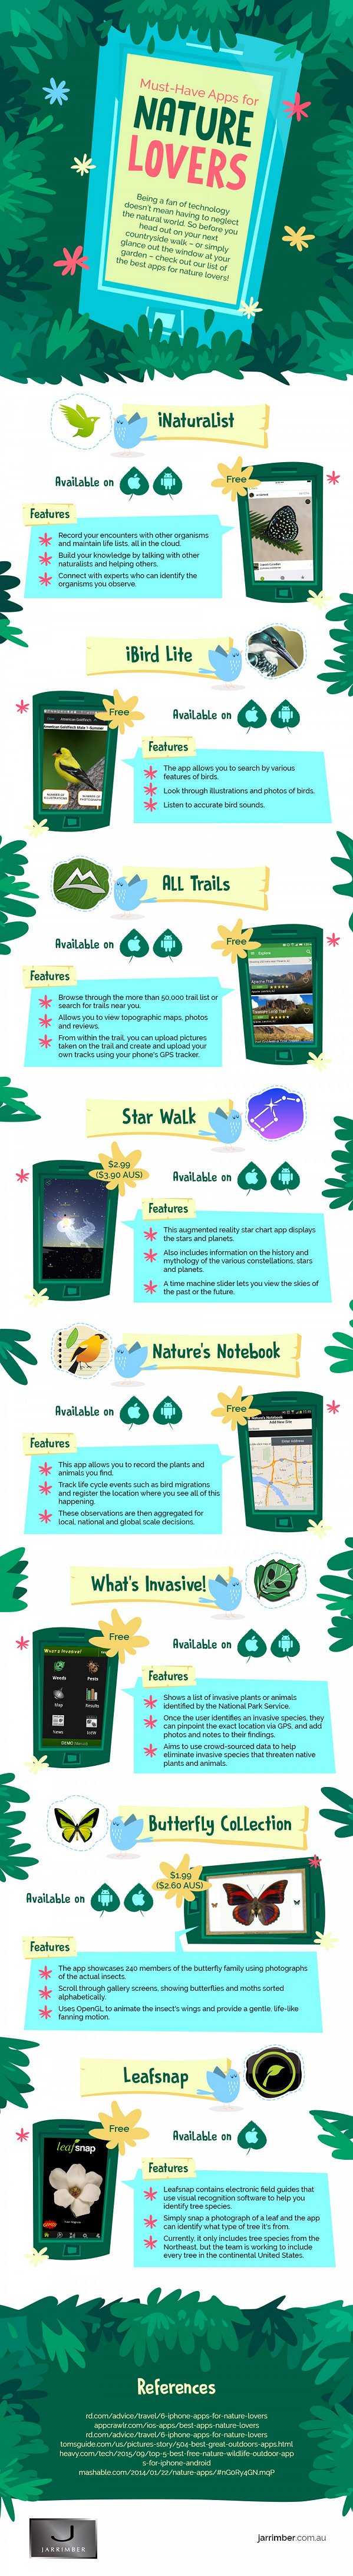 nature lovers app - infographic